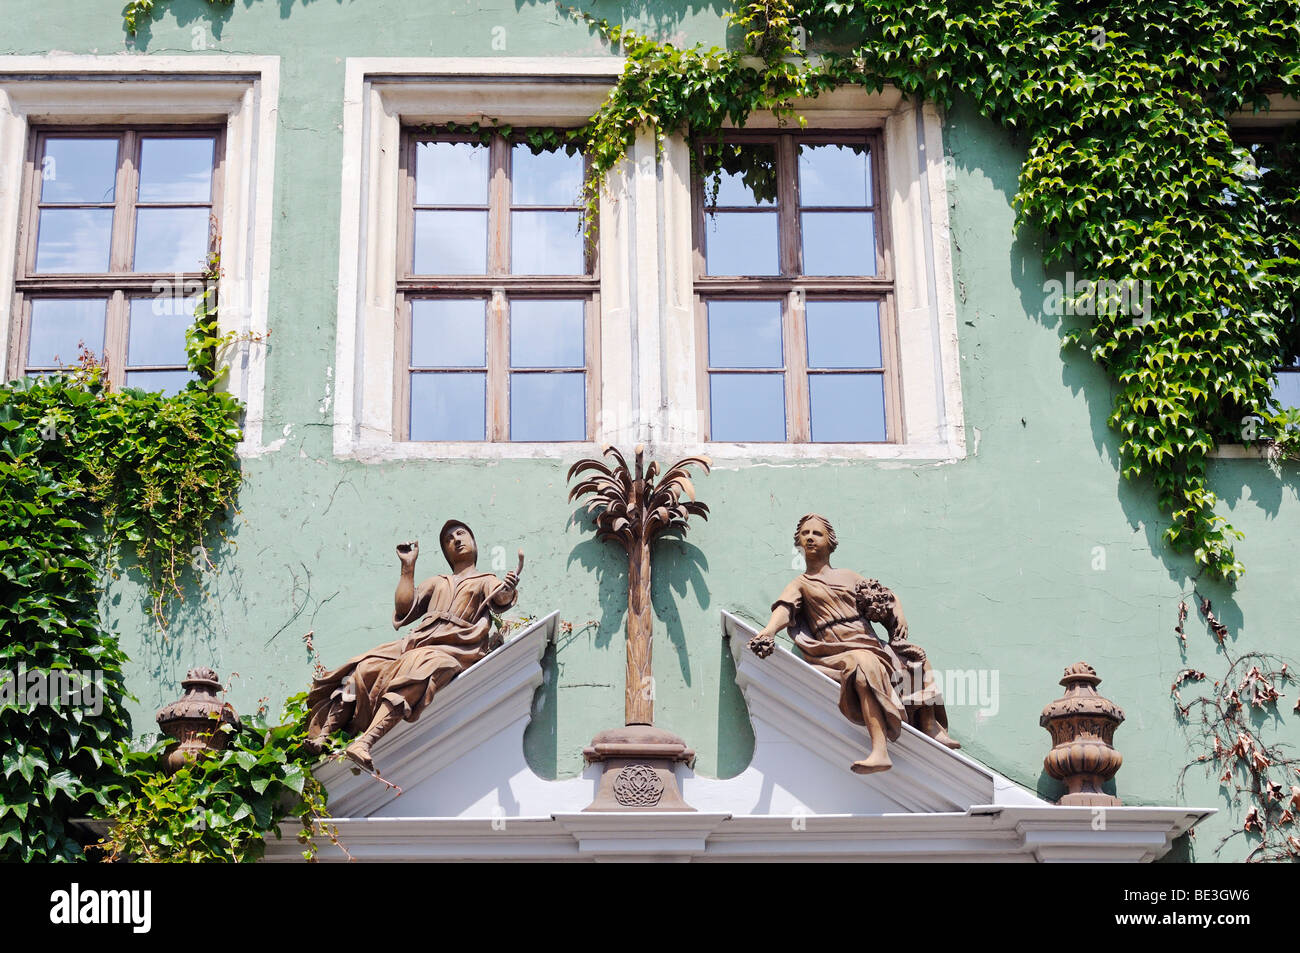 Sculptures, house sign of the 'Haus zum Palmbaum' museum, market square of Arnstadt, Thuringia, Germany, - Stock Image